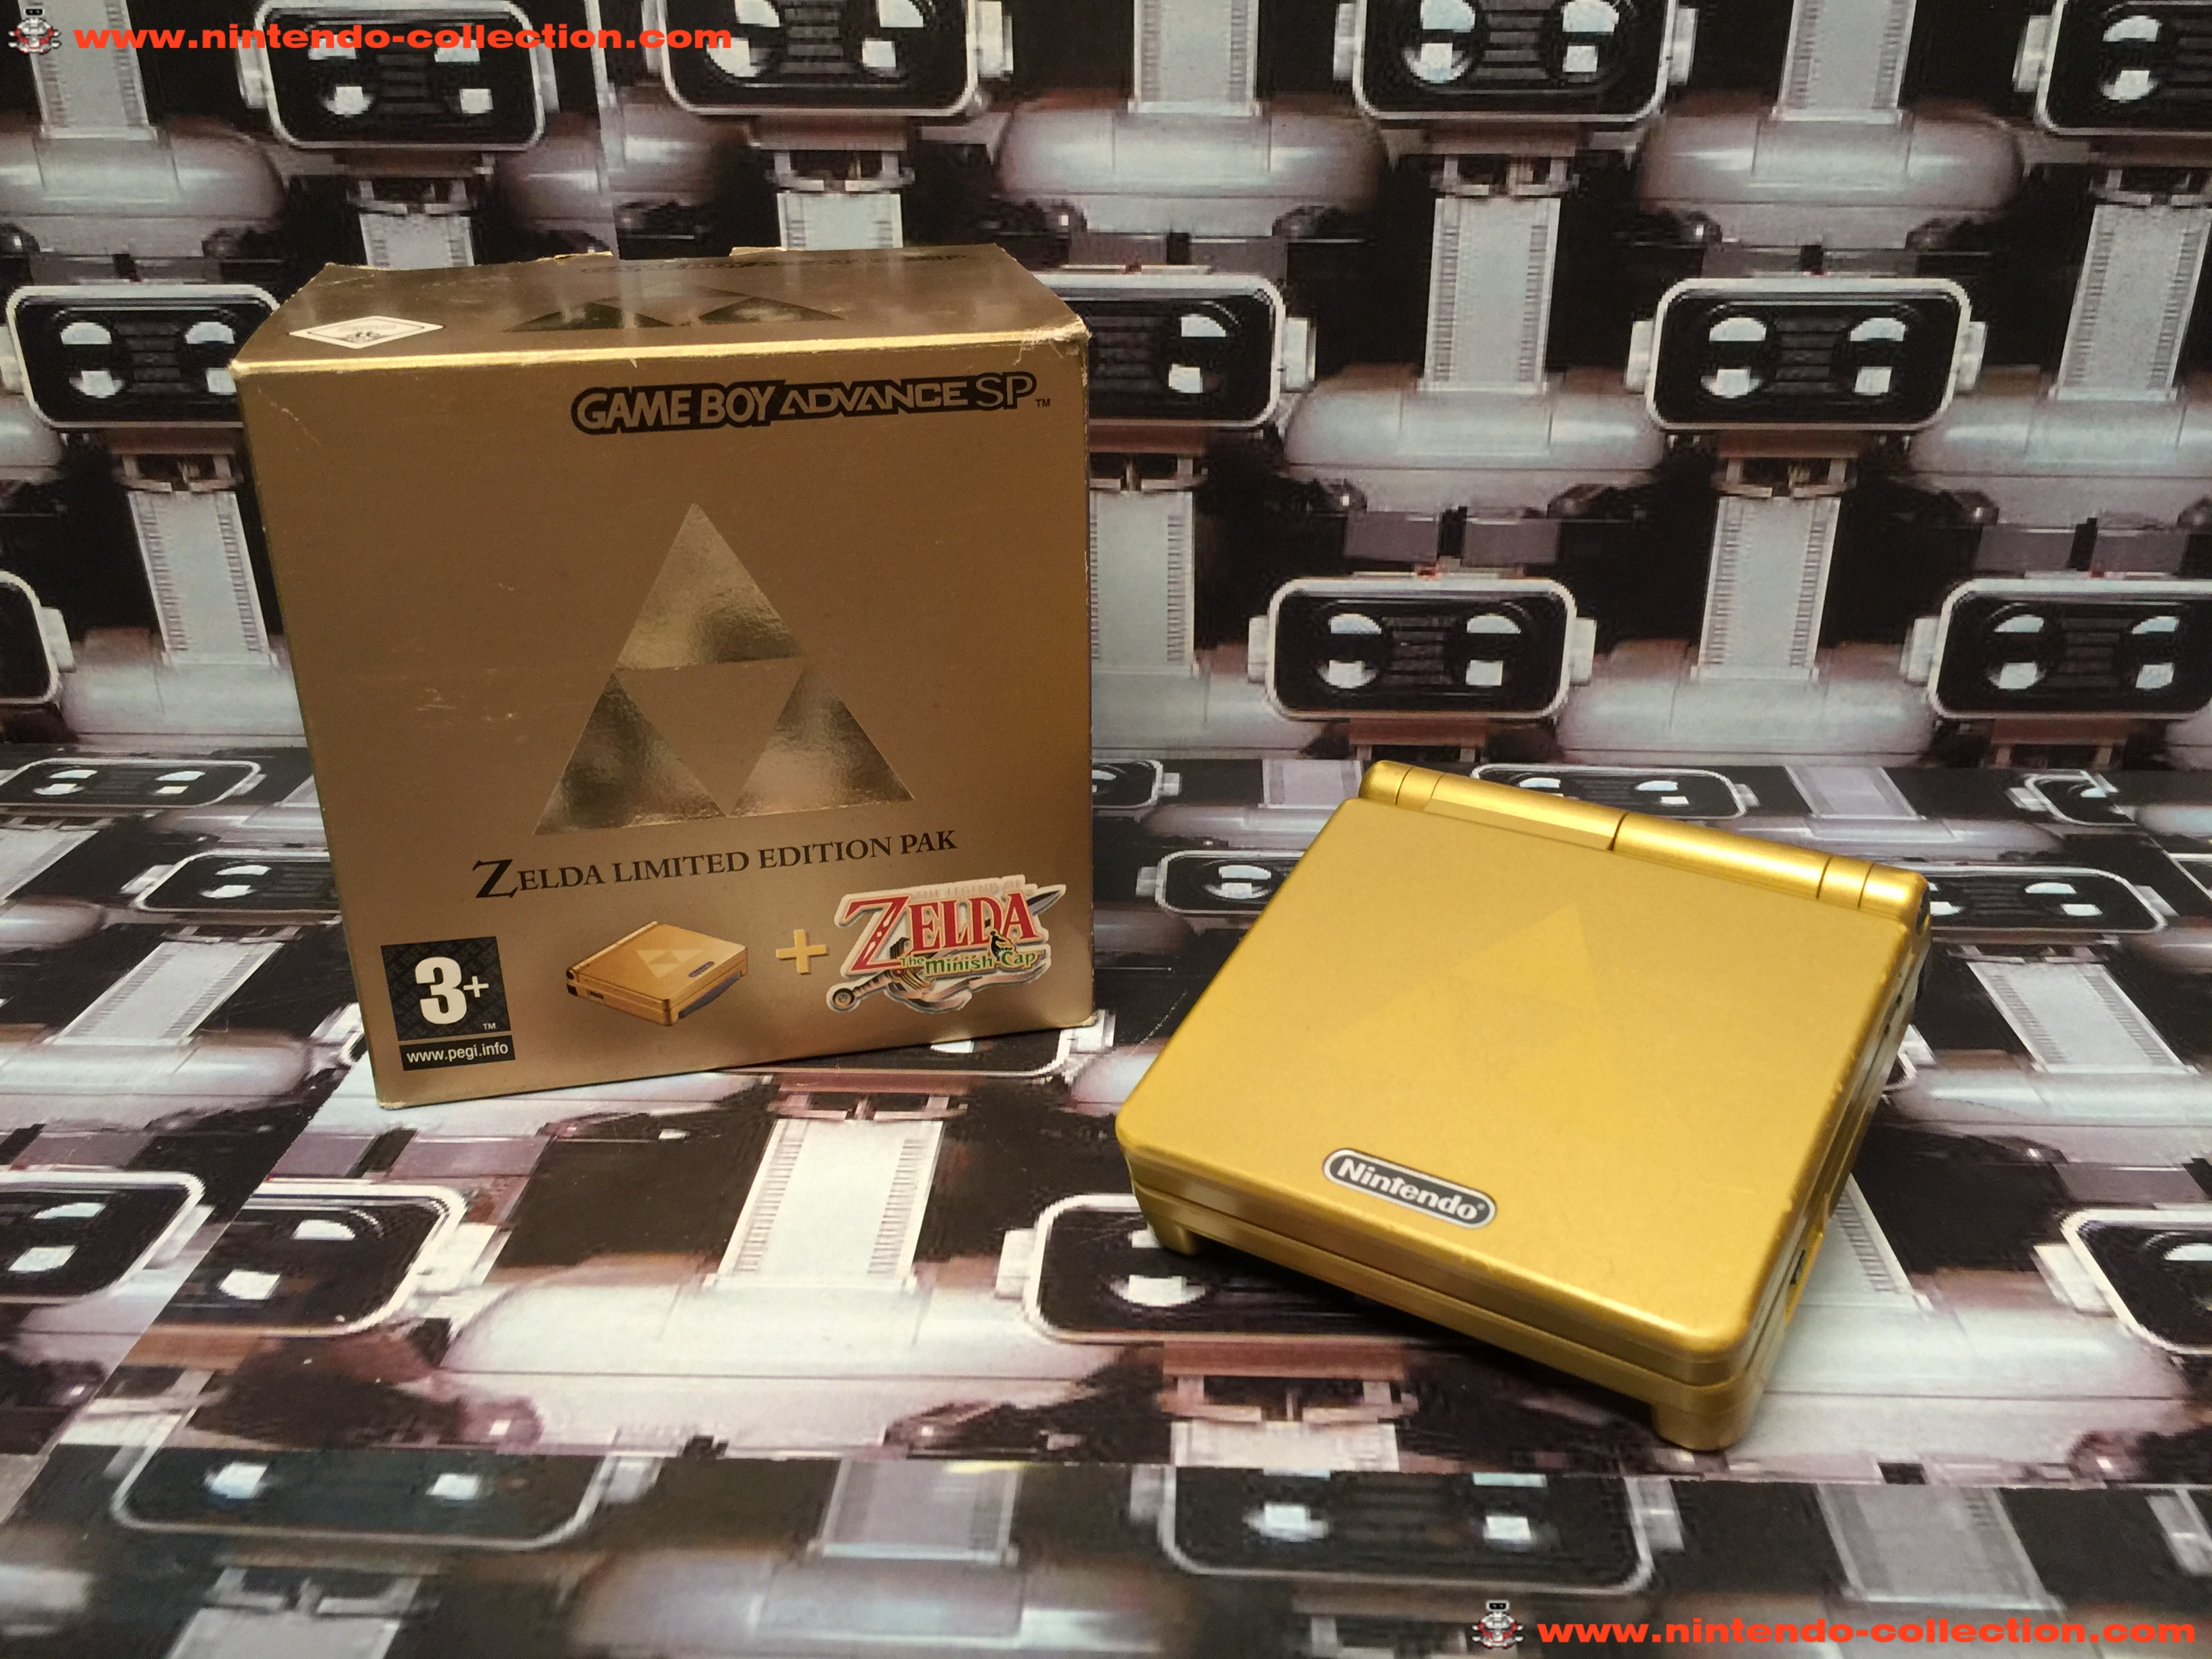 www.nintendo-collection.com - Gameboy Advance GBA SP Zelda Edition europeenne european - 01